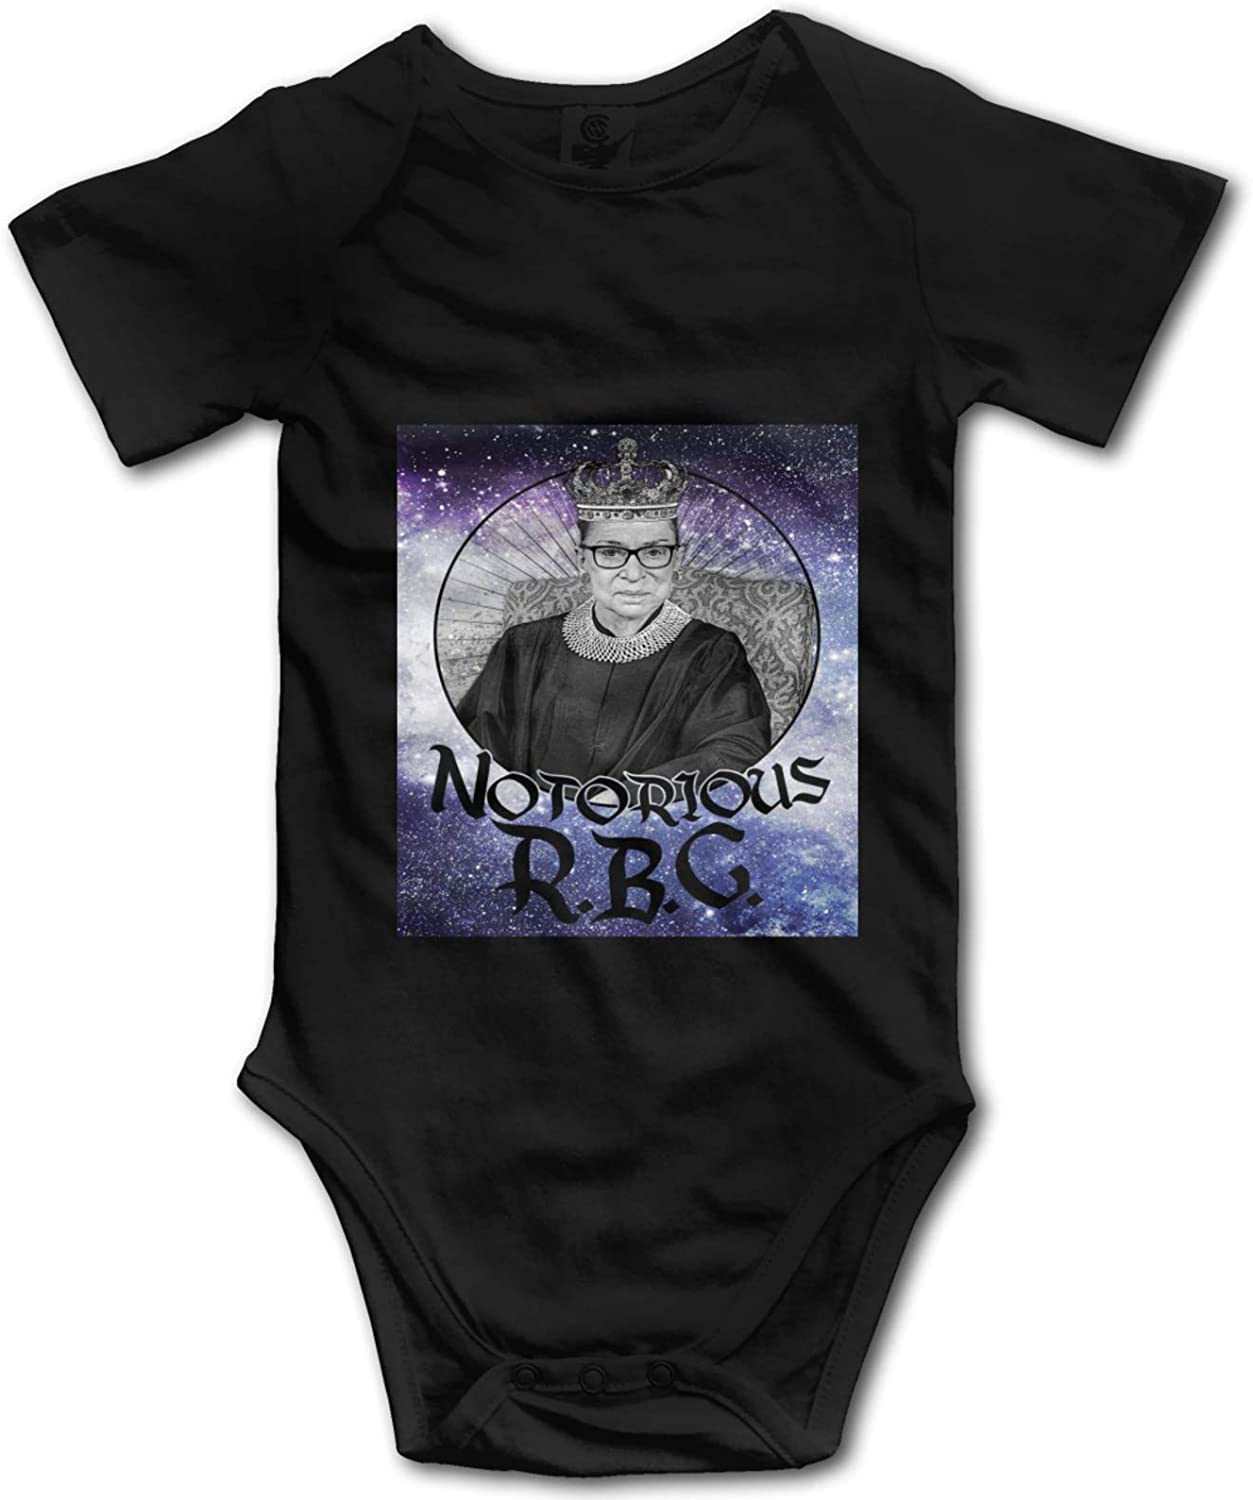 Baby Onesies 2 Pcs Notorious RBG Crown Newborn Birthday Gifts for Mom, Dad, Wife, Husband